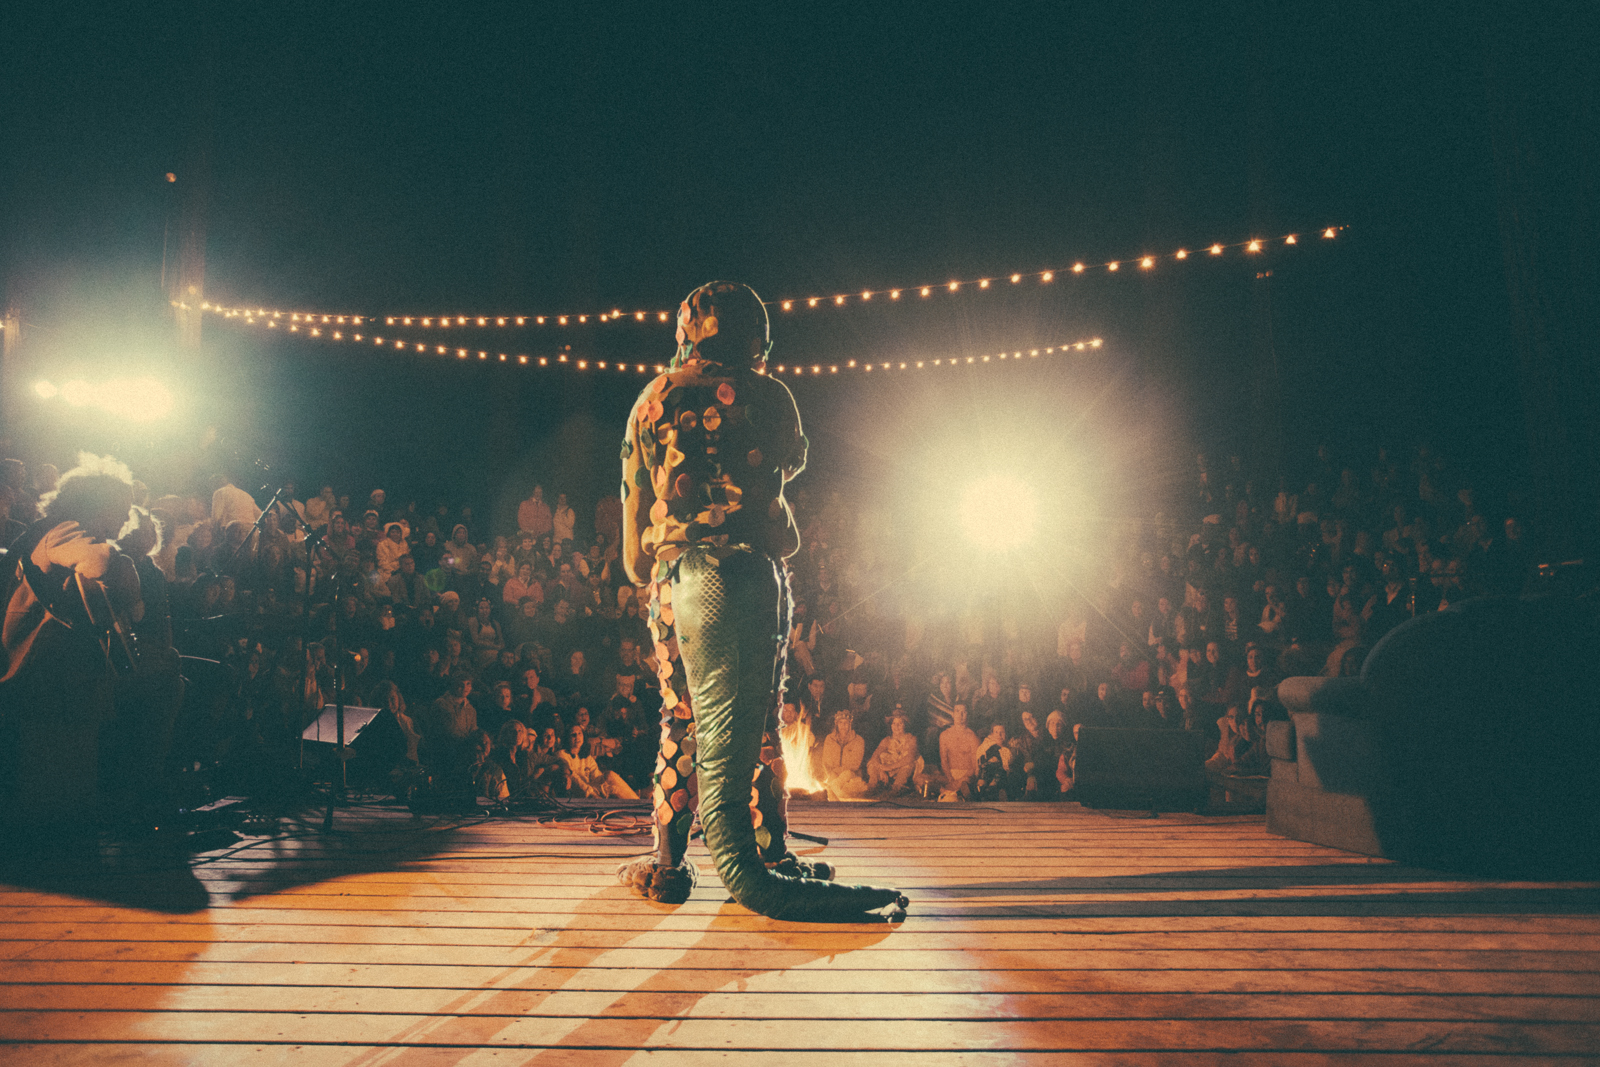 Camper standing alone onstage wearing a dinosaur costume in front of the camp